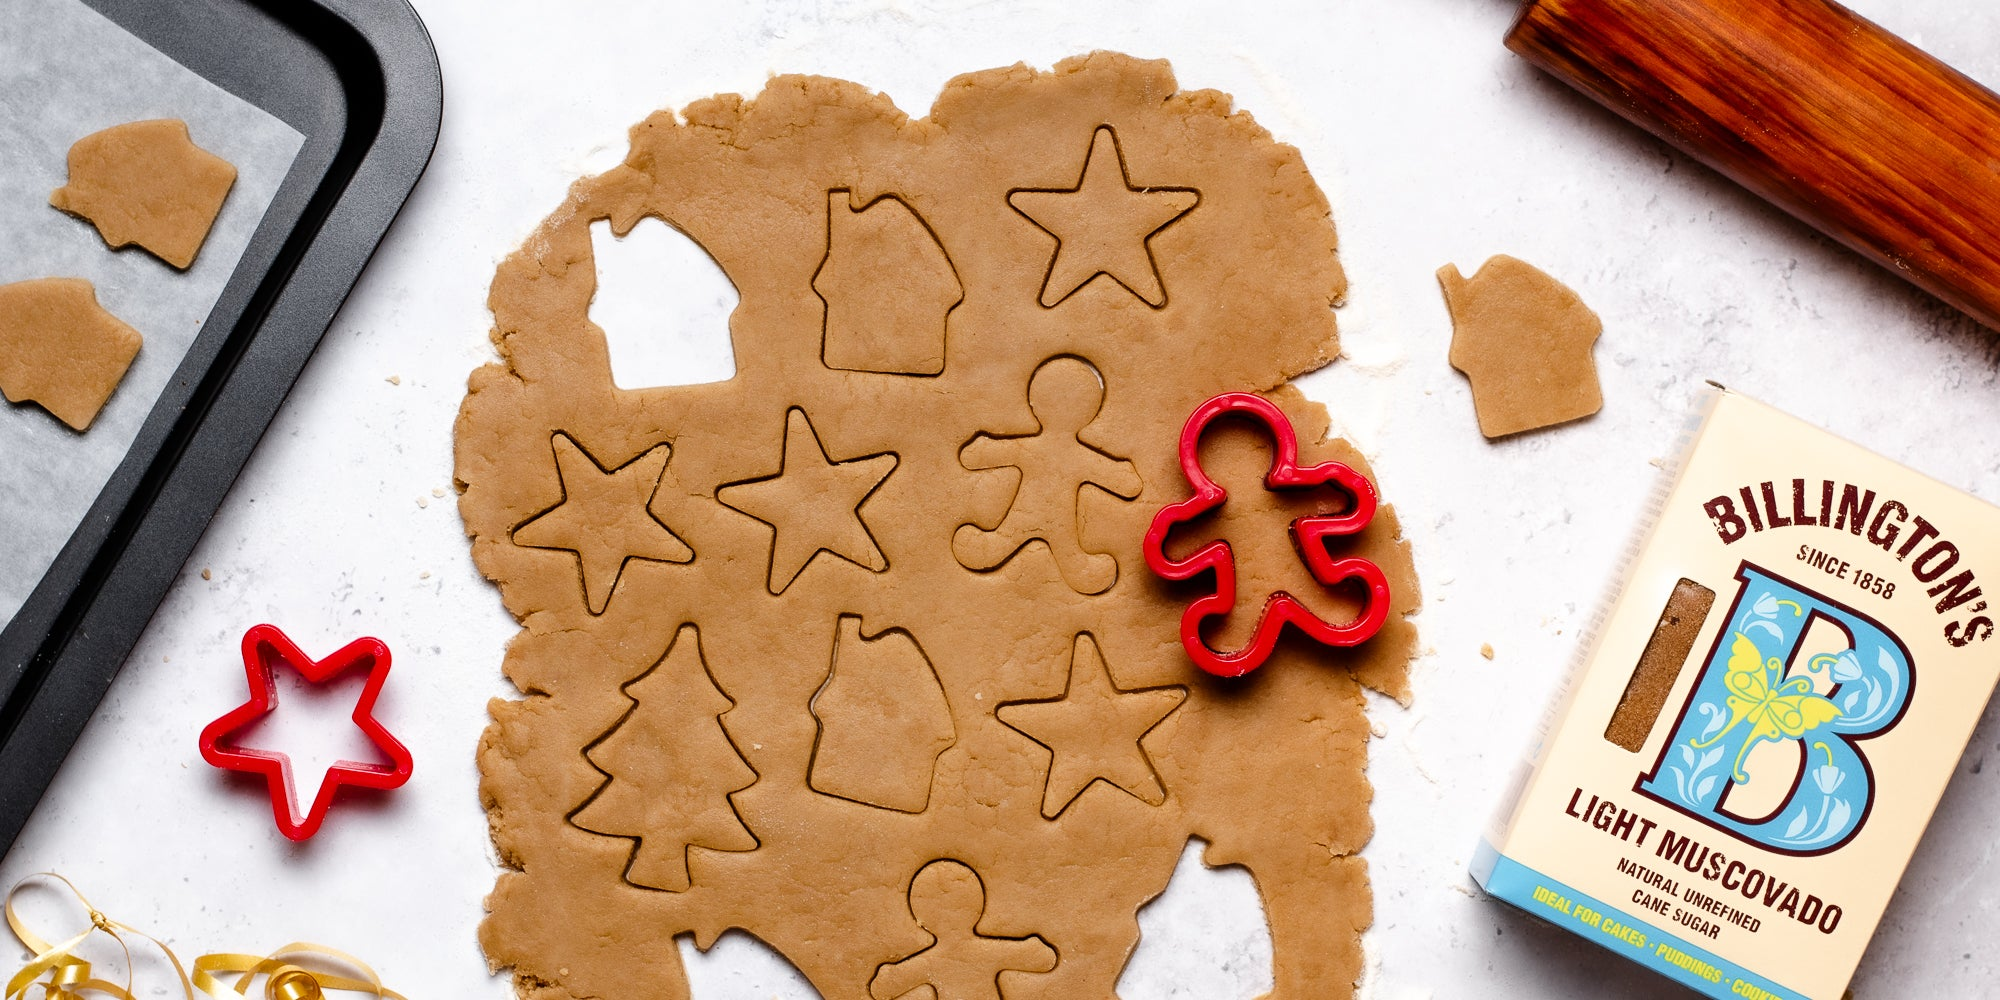 Top down view of a gingerbread man cookie cutter cutting out vegan gingerbread dough